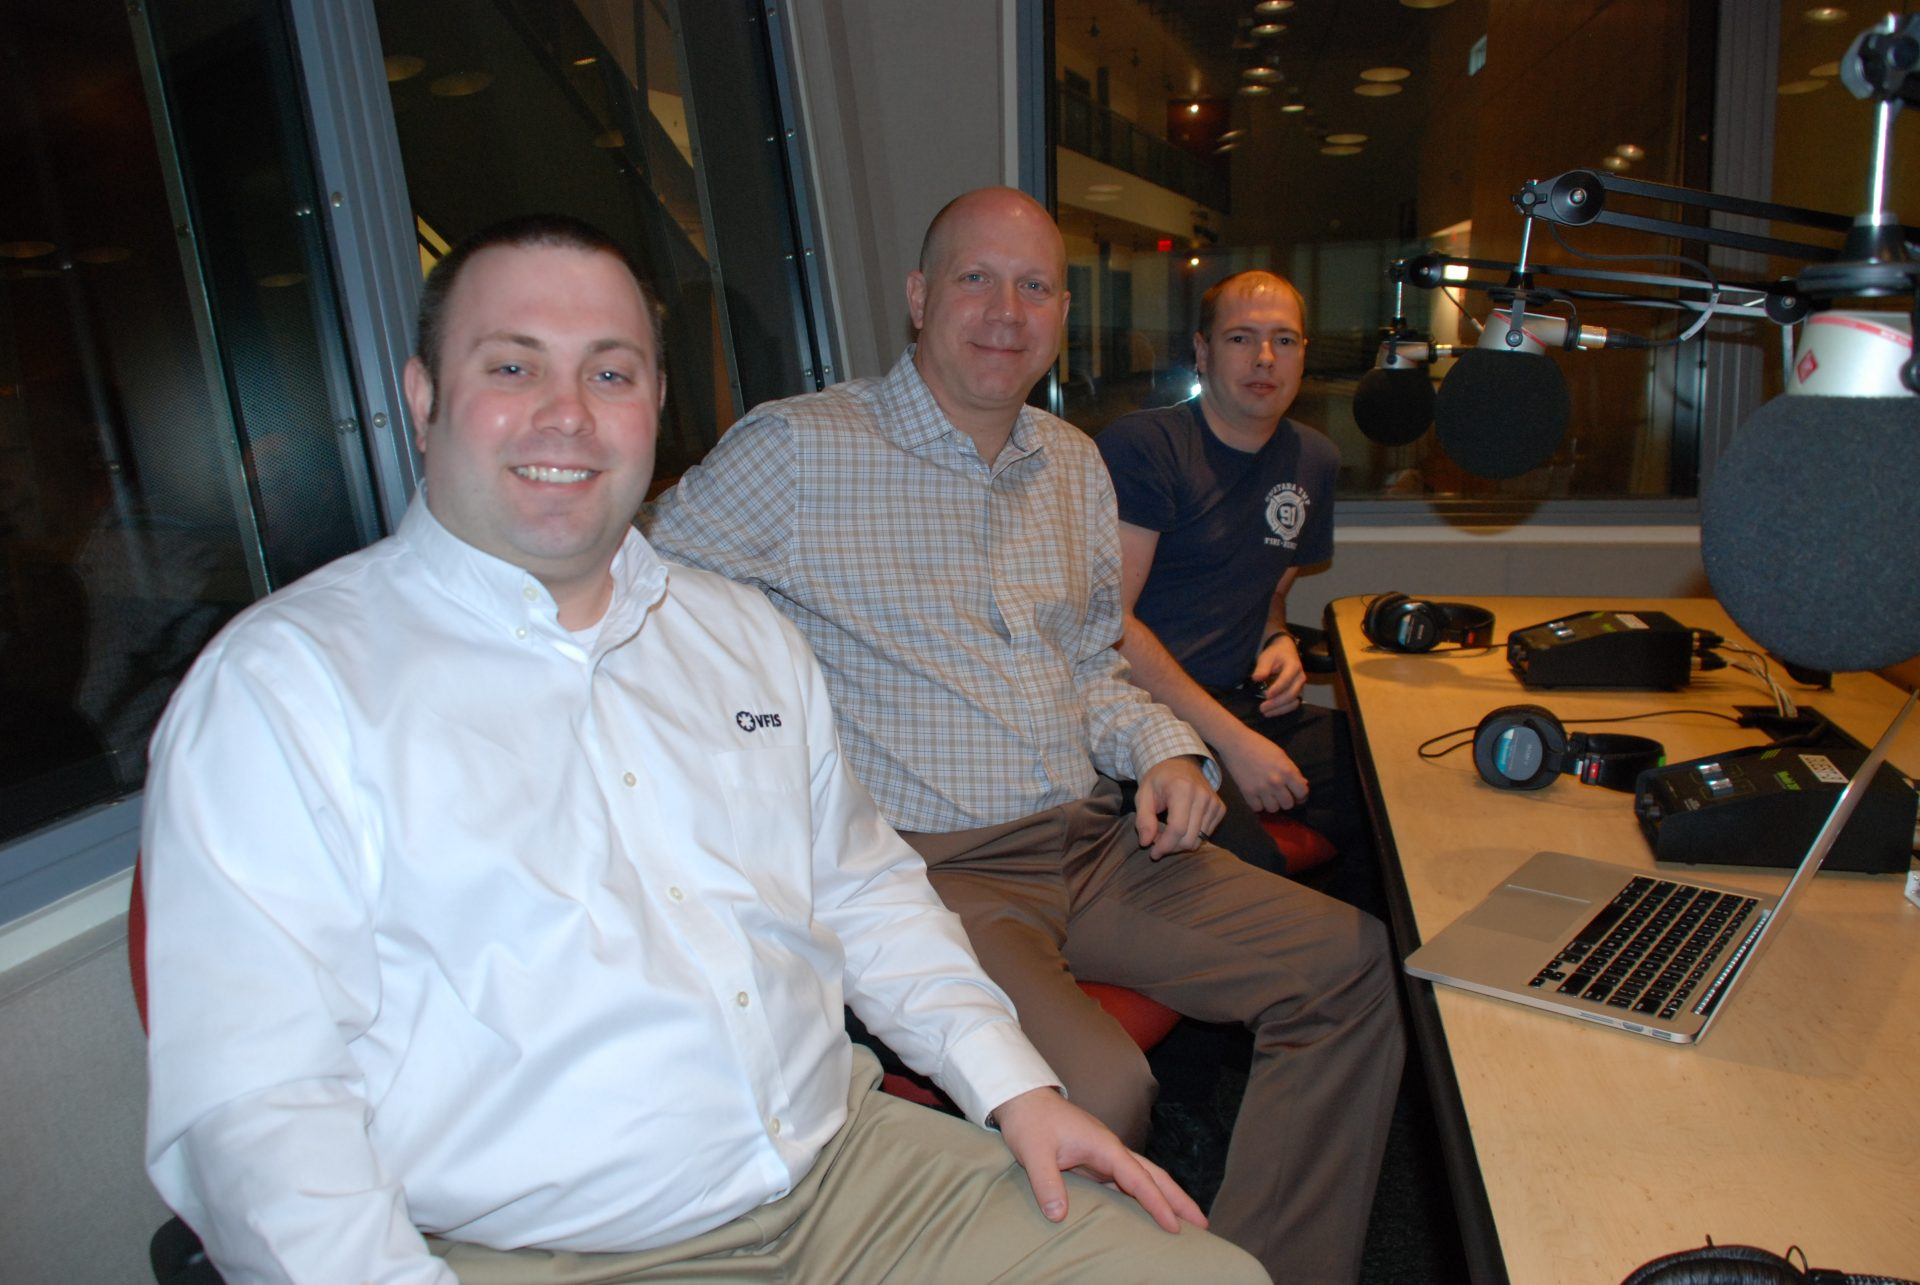 Mike Ibberson, Jerry Ozog and Justin Eberly appear on Smart Talk on February 13, 2020.